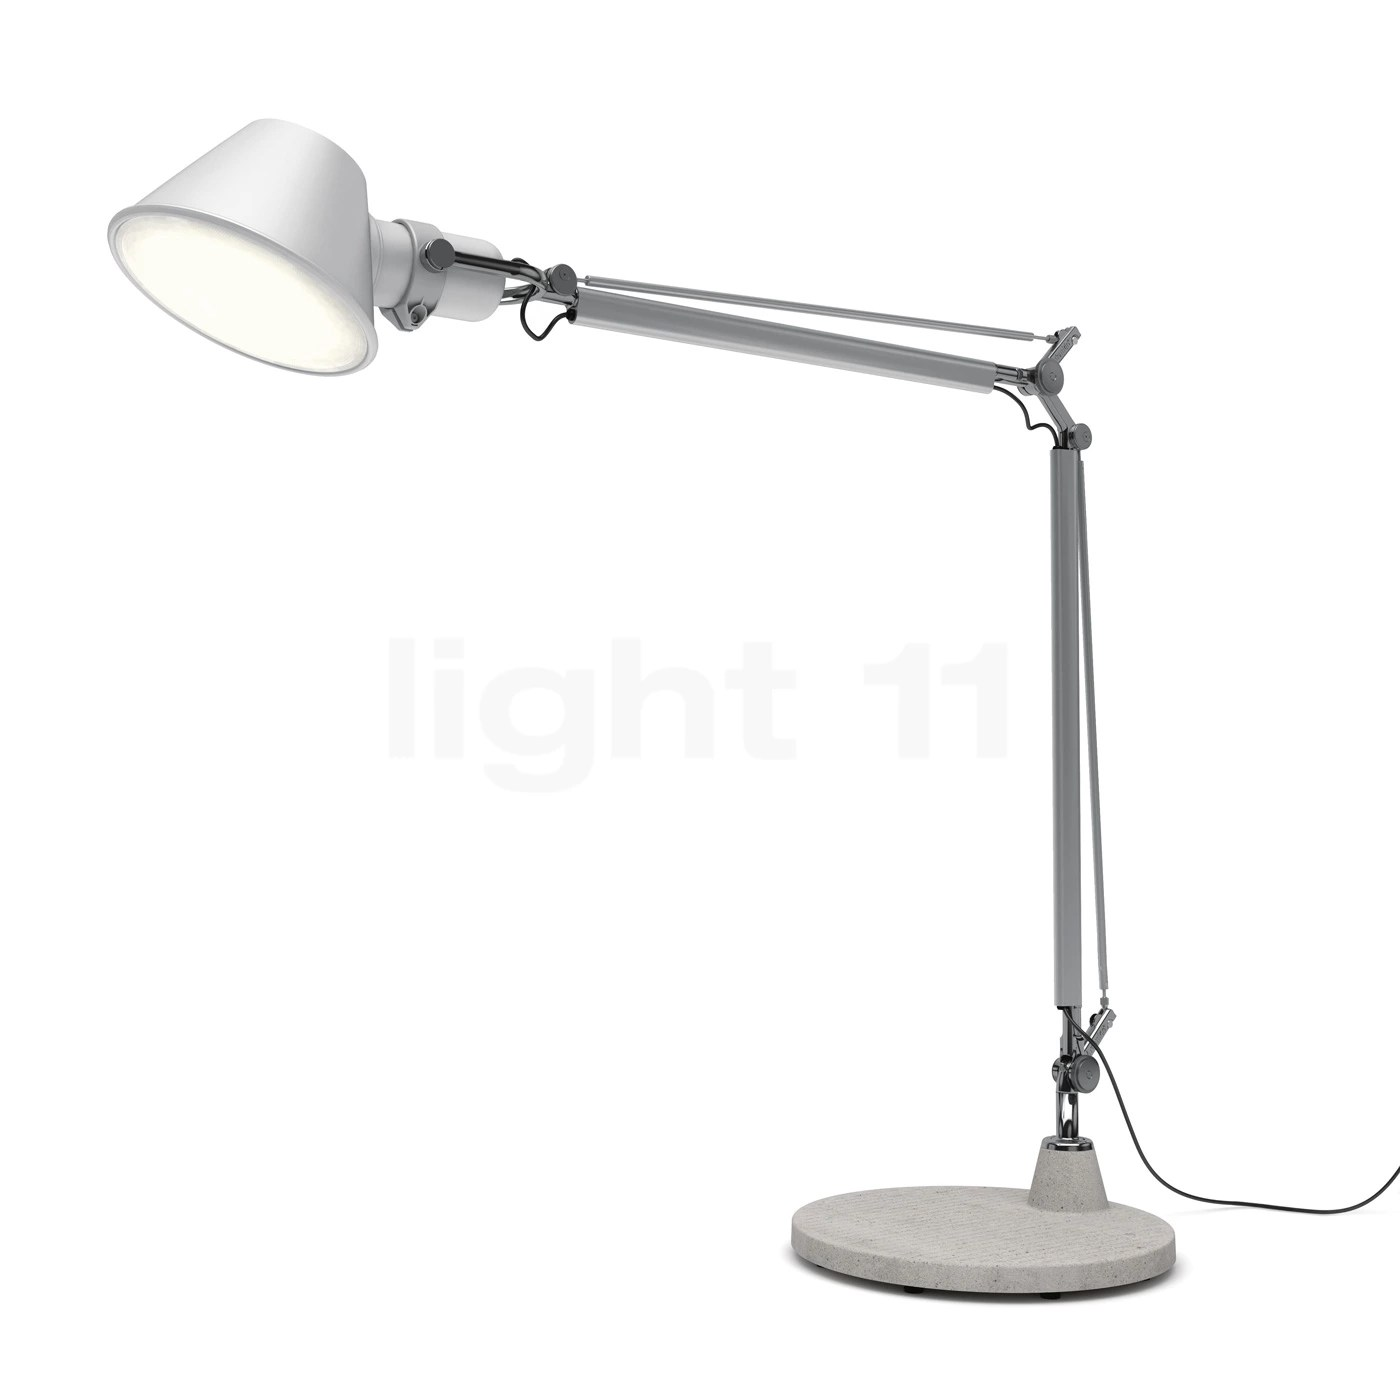 Lampe Exterieur Xxl Artemide Outdoor Tolomeo Xxl Floor Lamps Buy At Light11 Eu